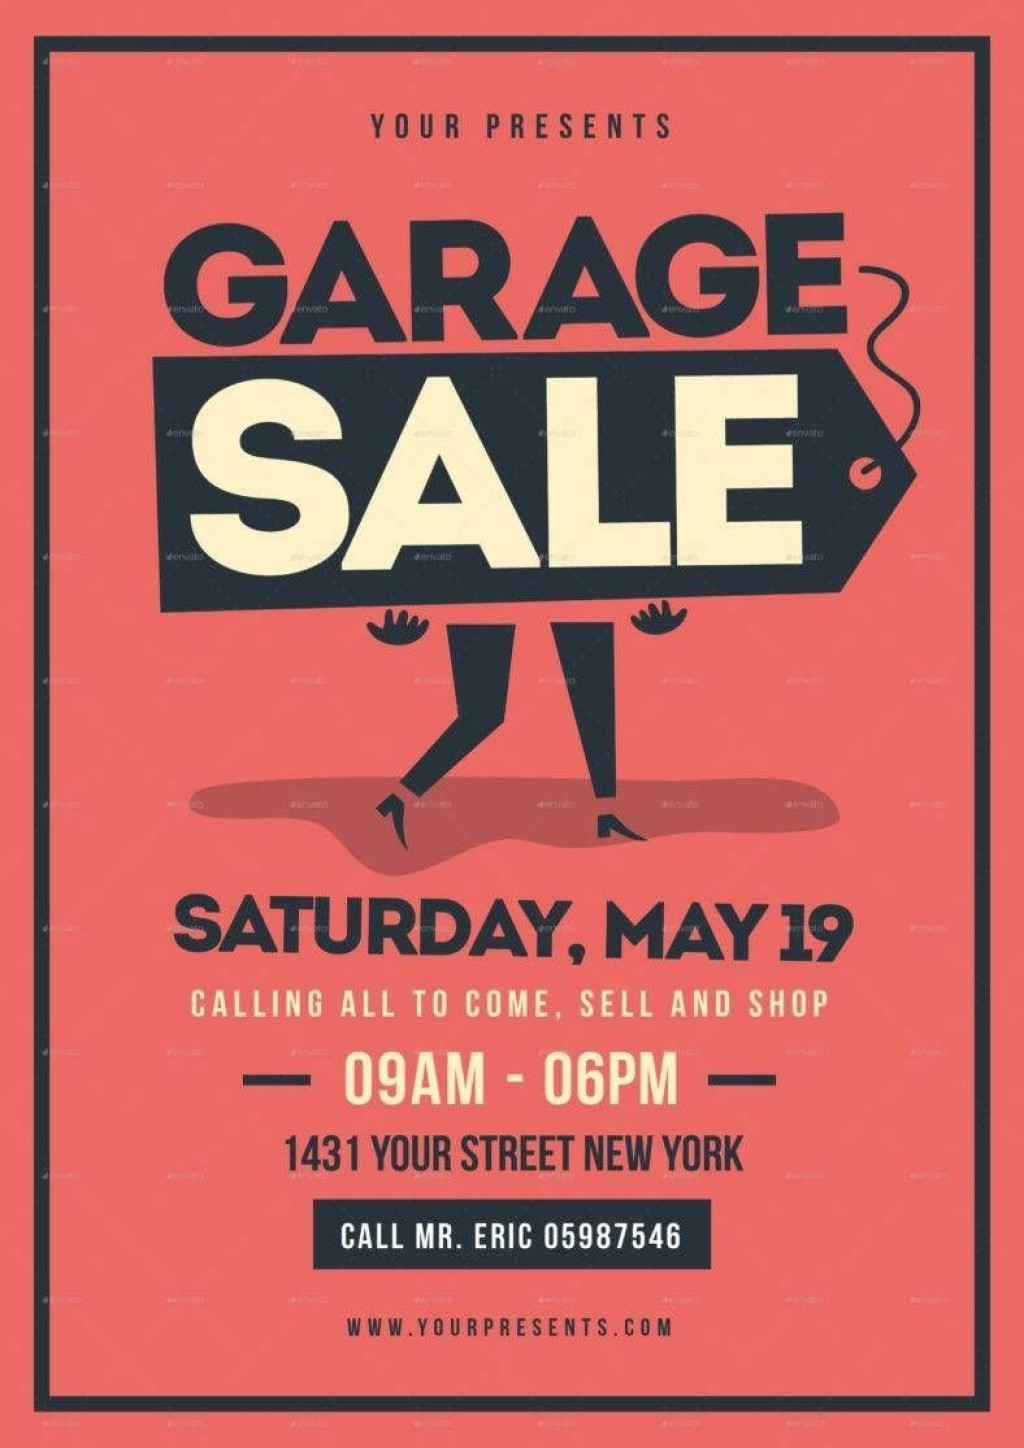 007 Remarkable Yard Sale Flyer Template Free Highest Quality  Community GarageLarge